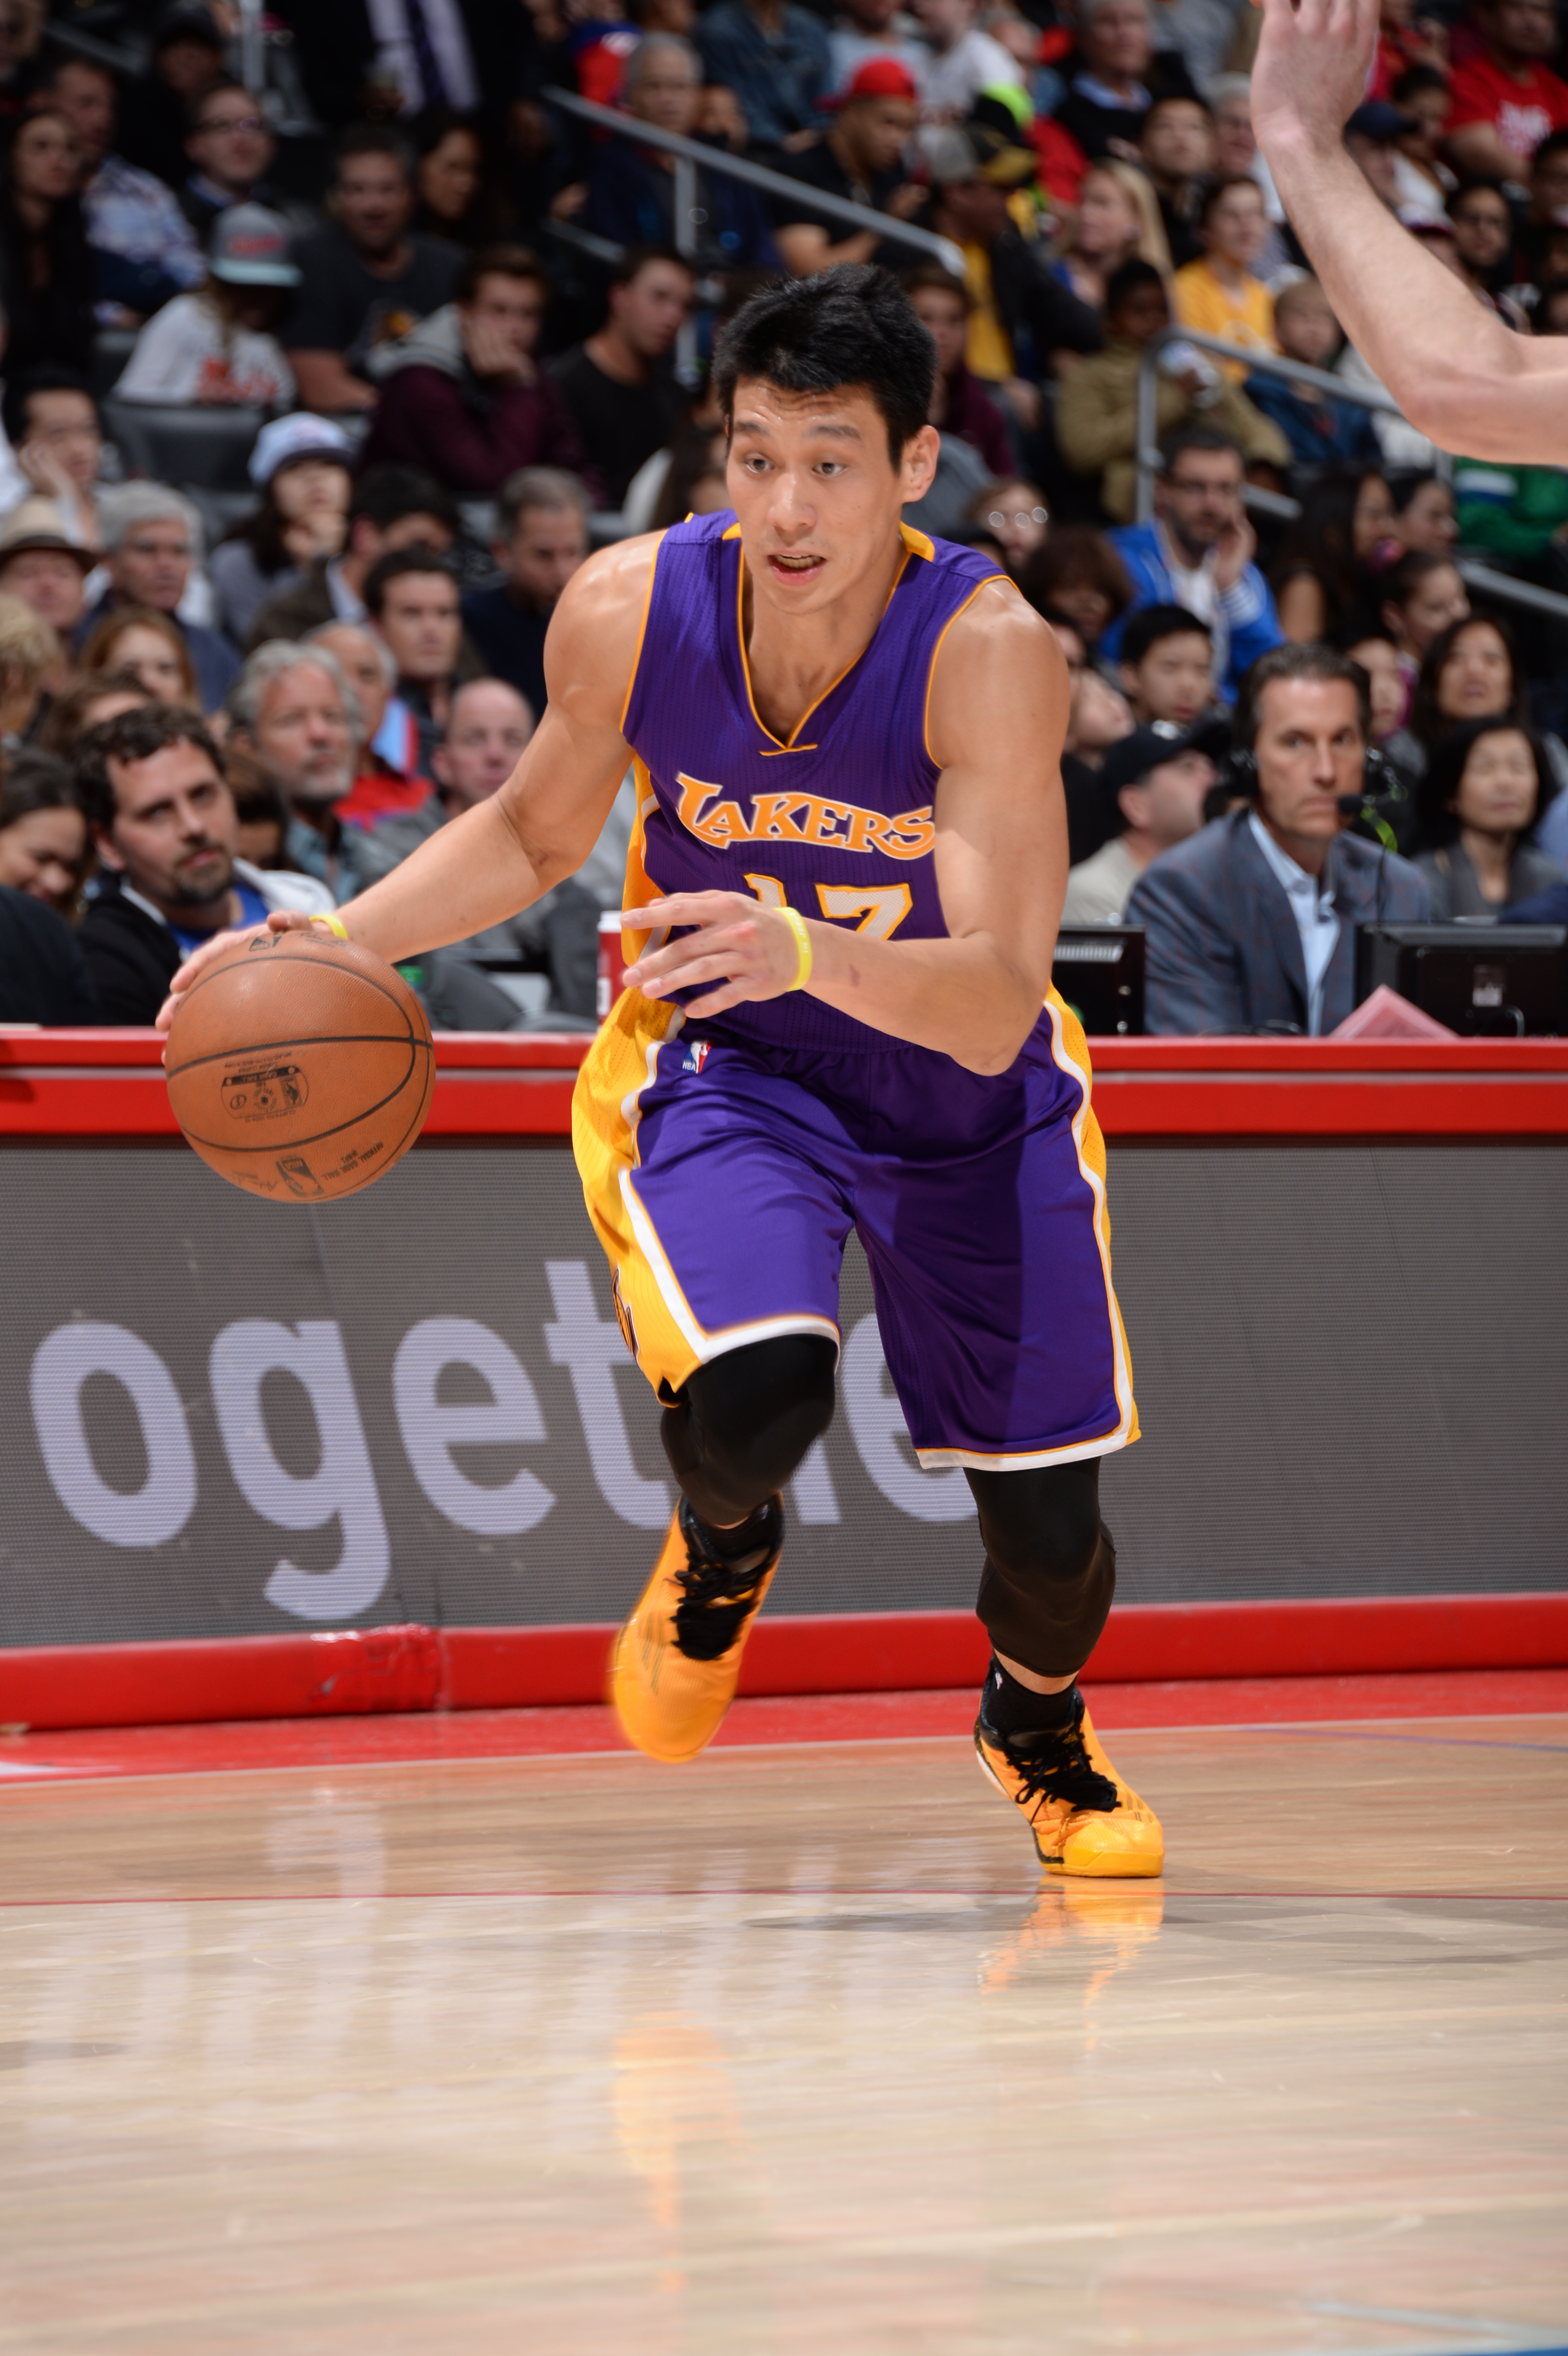 LOS ANGELES, CA - APRIL 7:  Jeremy Lin #17 of the Los Angeles Lakers drives to the basket against the Los Angeles Clippers on April 7, 2015 at Staples Center in Los Angeles, California. (Photo by Andrew D. Bernstein/NBAE via Getty Images)